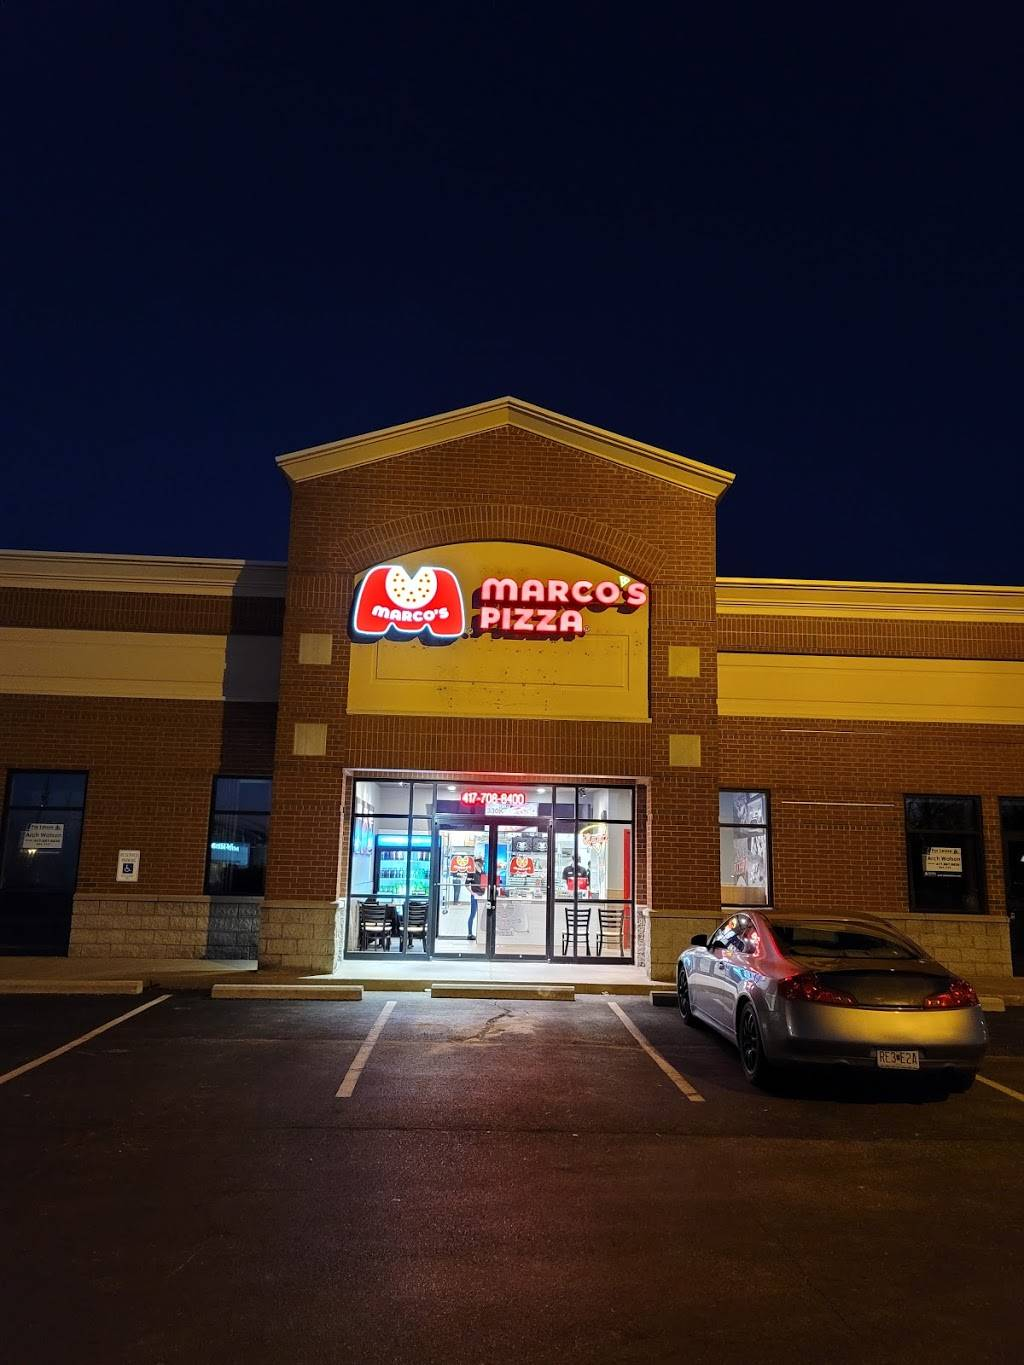 Marcos Pizza | meal delivery | 330 W Farm Rd 182 Suite K, Springfield, MO 65810, USA | 4177088400 OR +1 417-708-8400